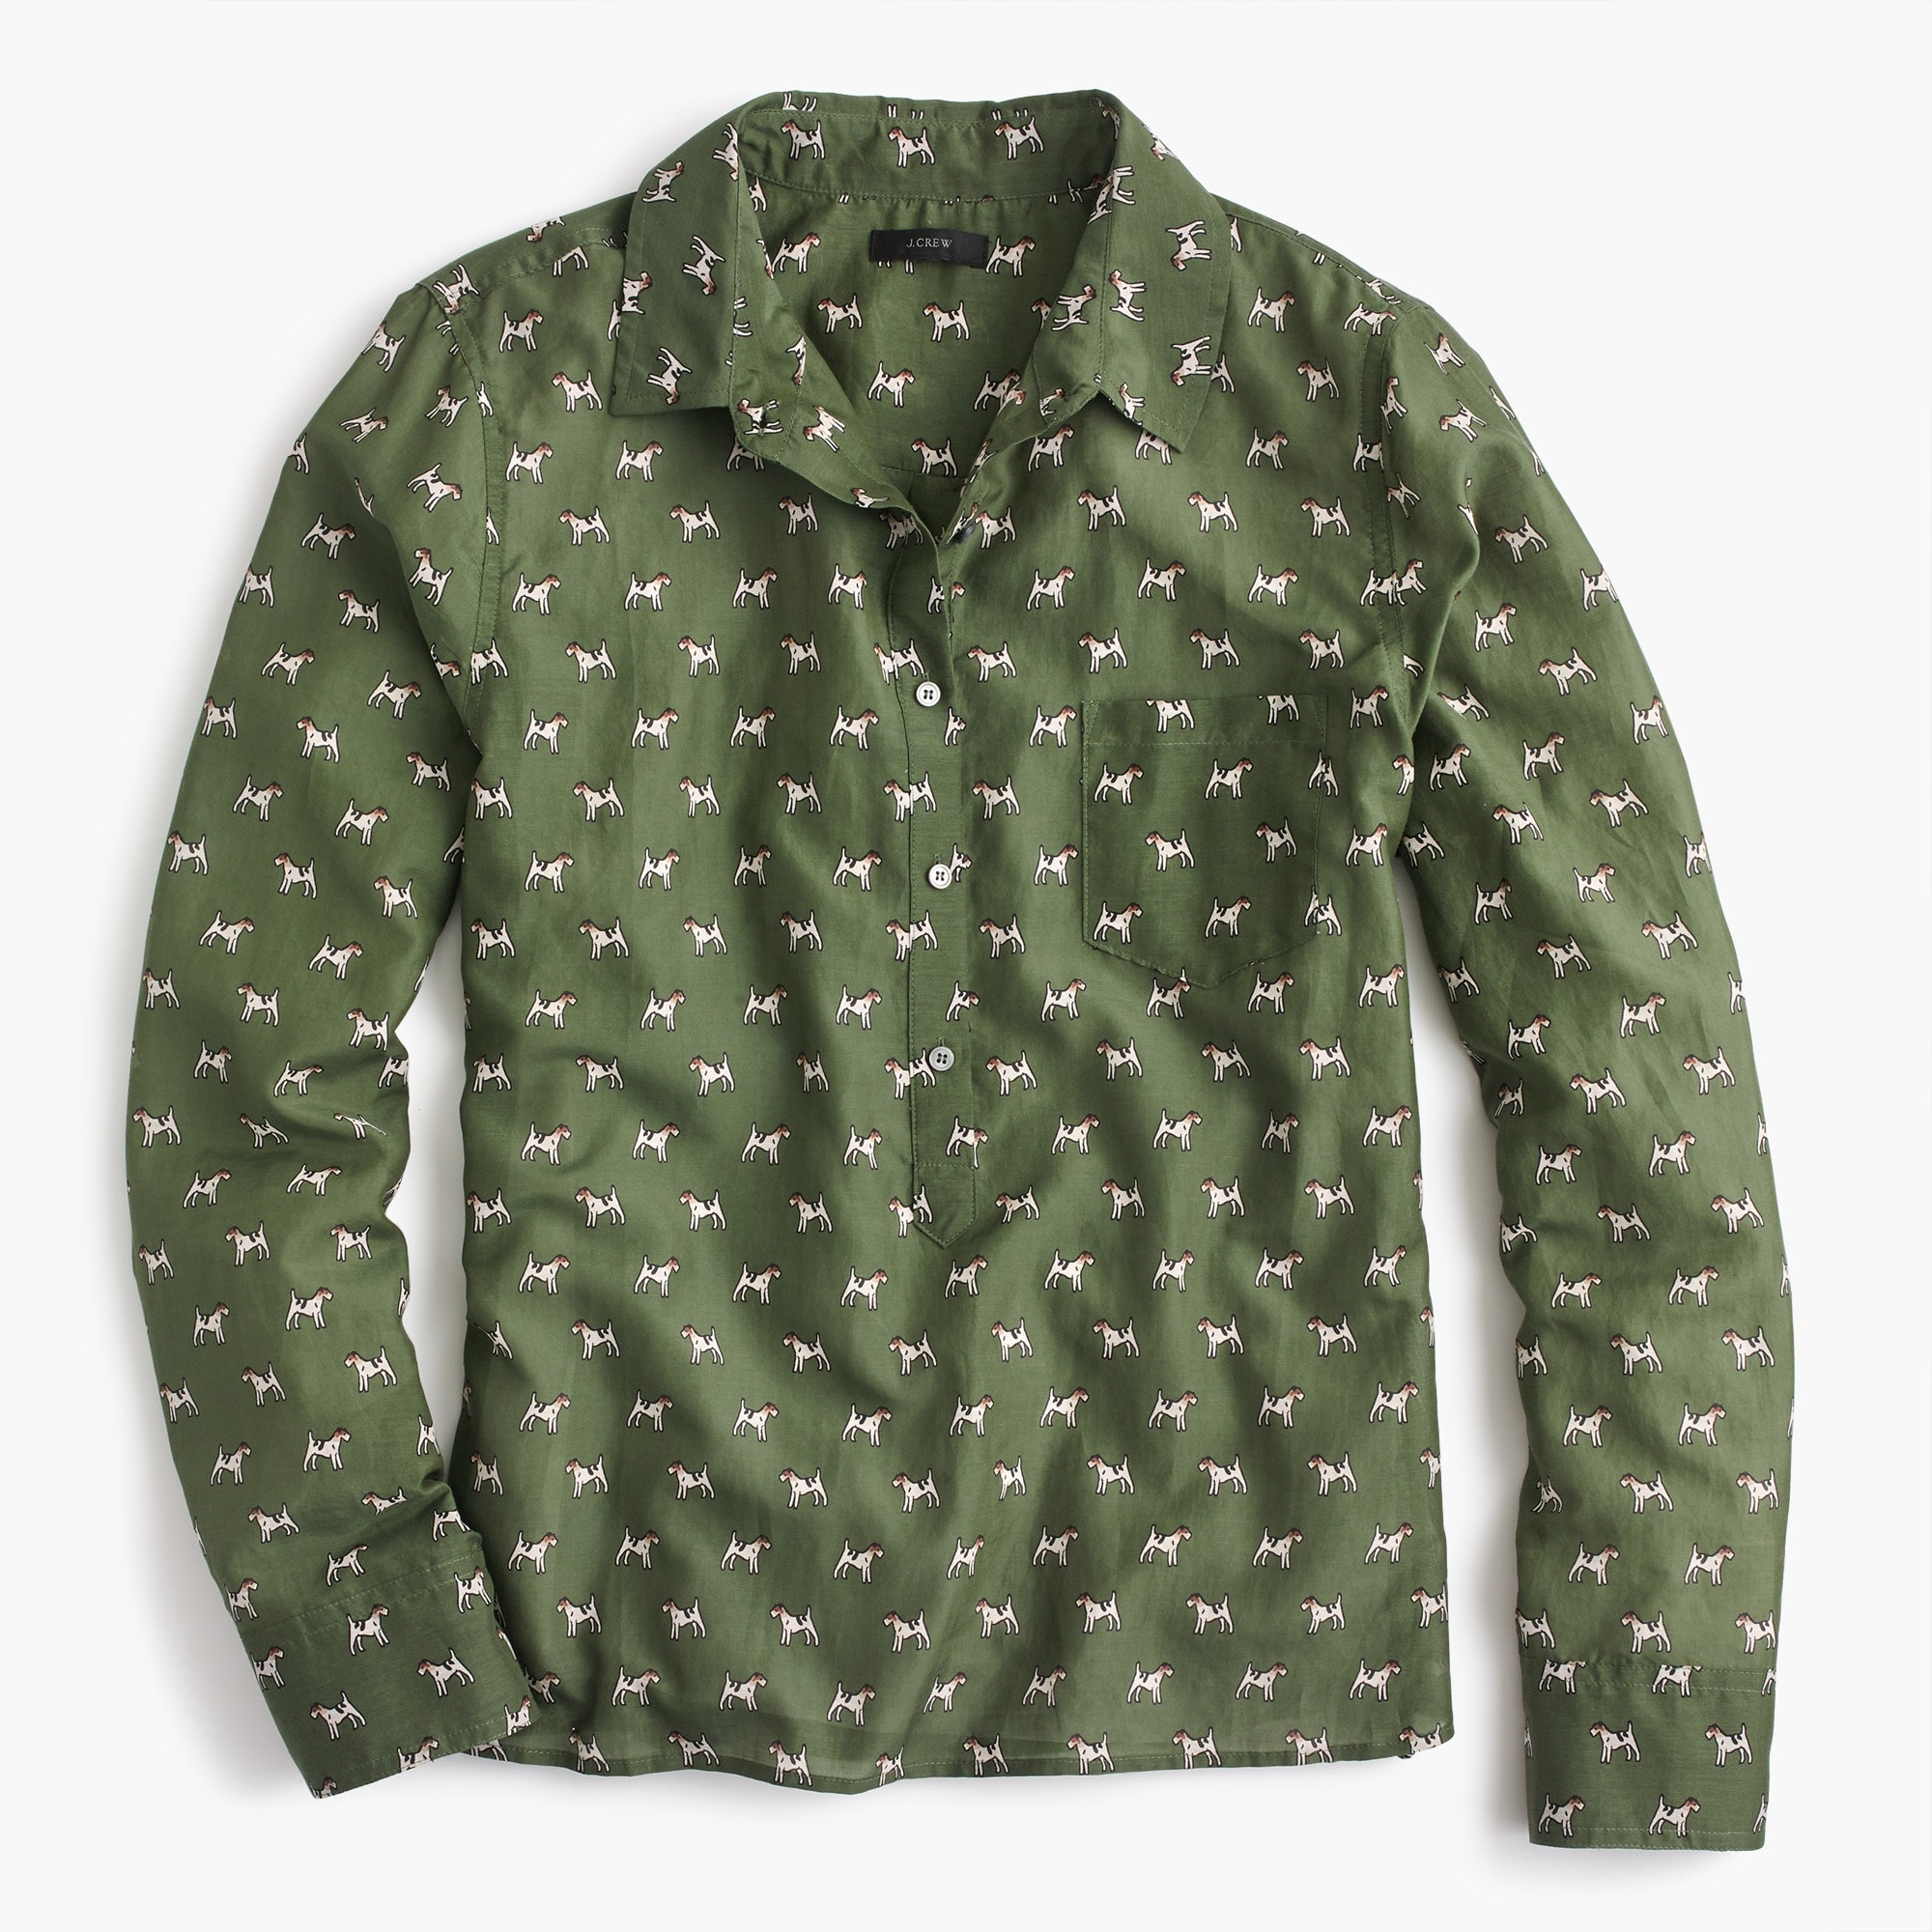 Petite popover shirt in Terrier print